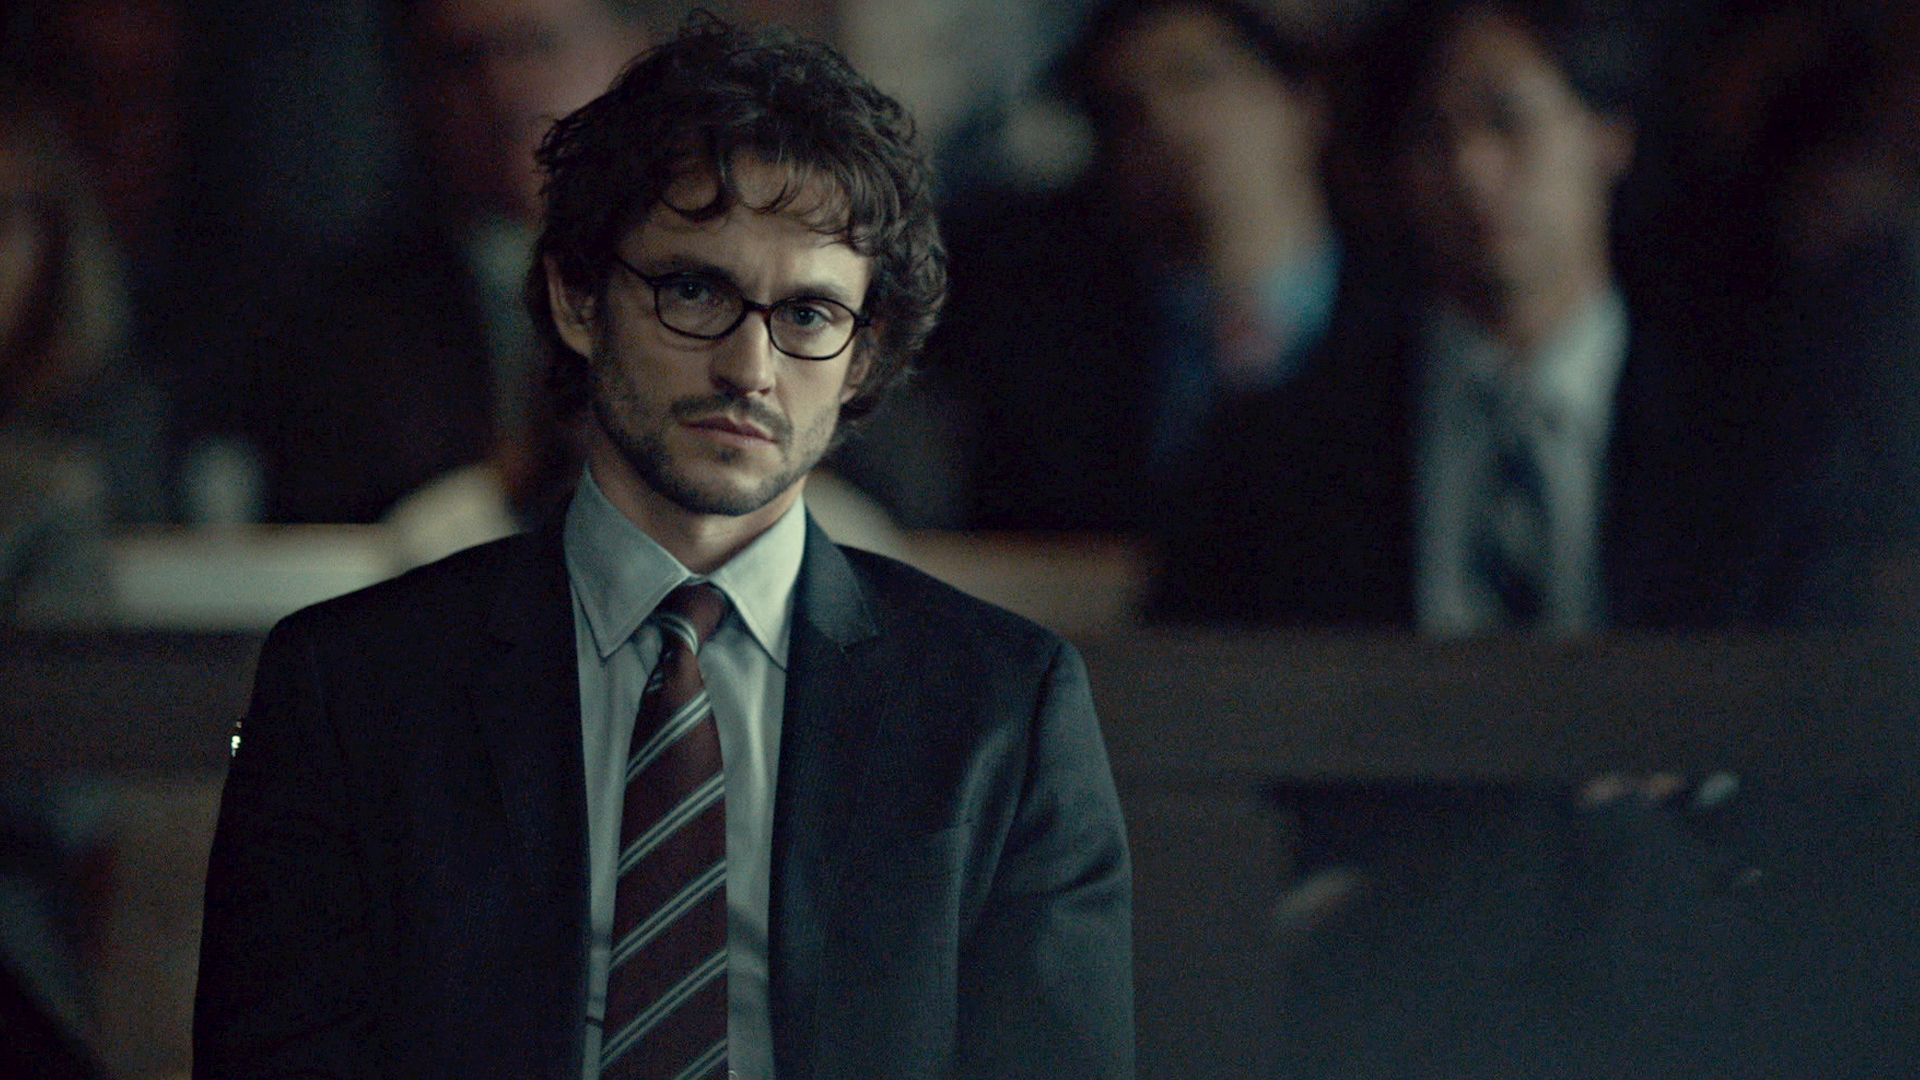 As Will's murder trial begins, a copycat killer sends a gruesome message. Jack is under pressure to wrap up Will's case while Hannibal hopes for his friend's exoneration.